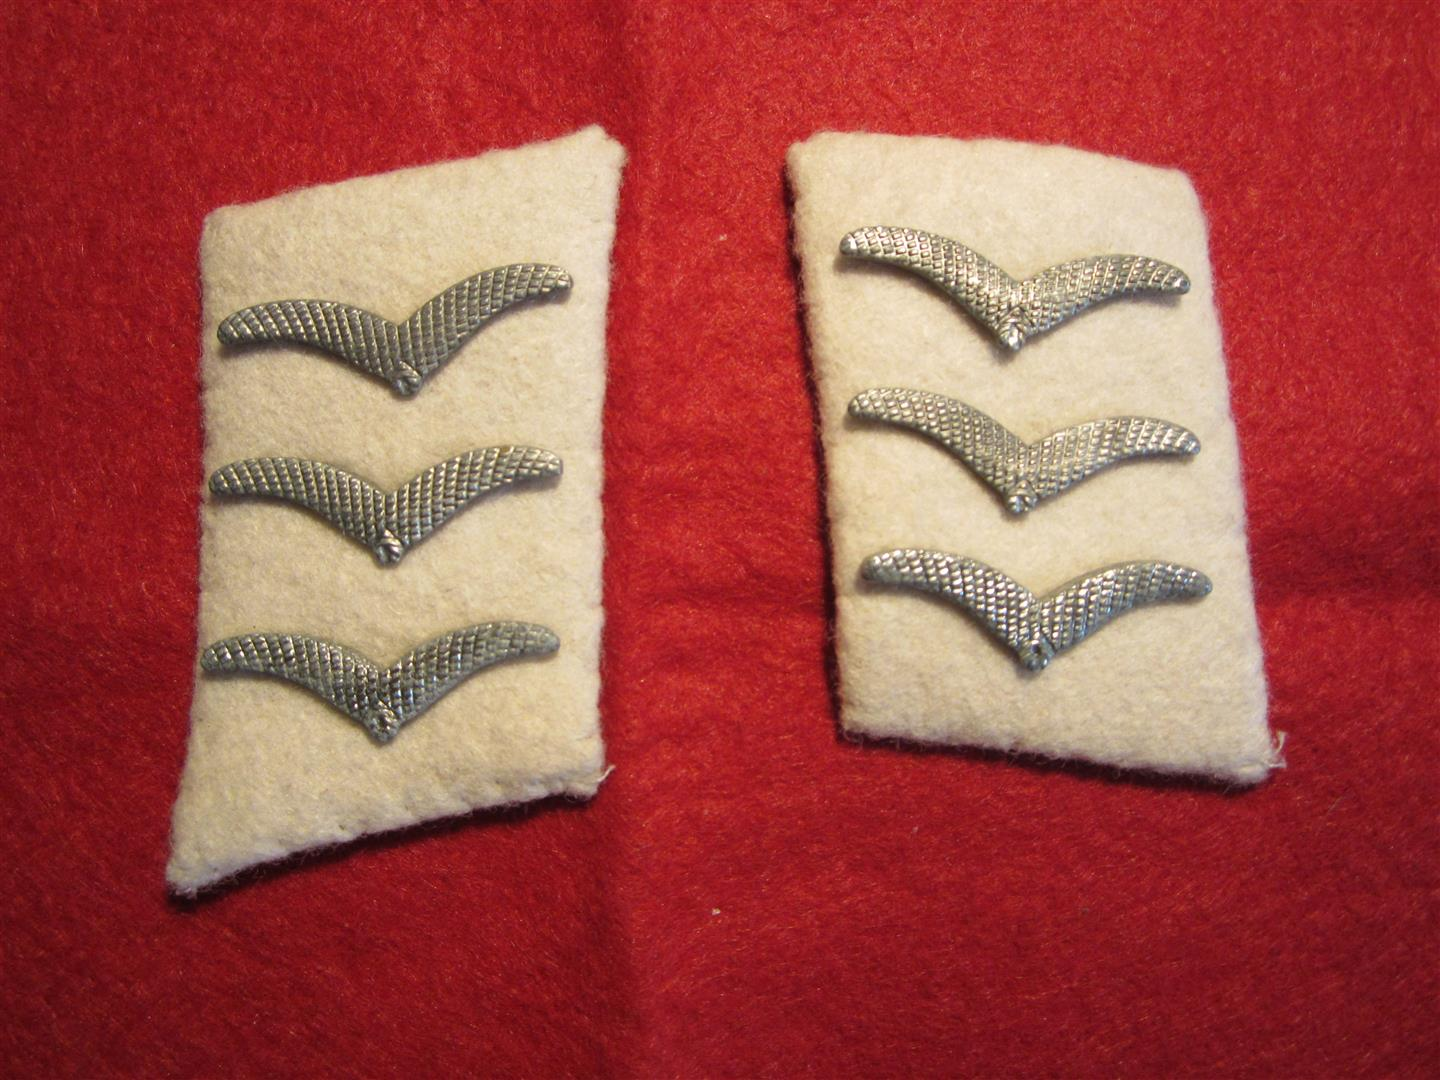 WW2 German WL Herman Goering Div. Collar Patches